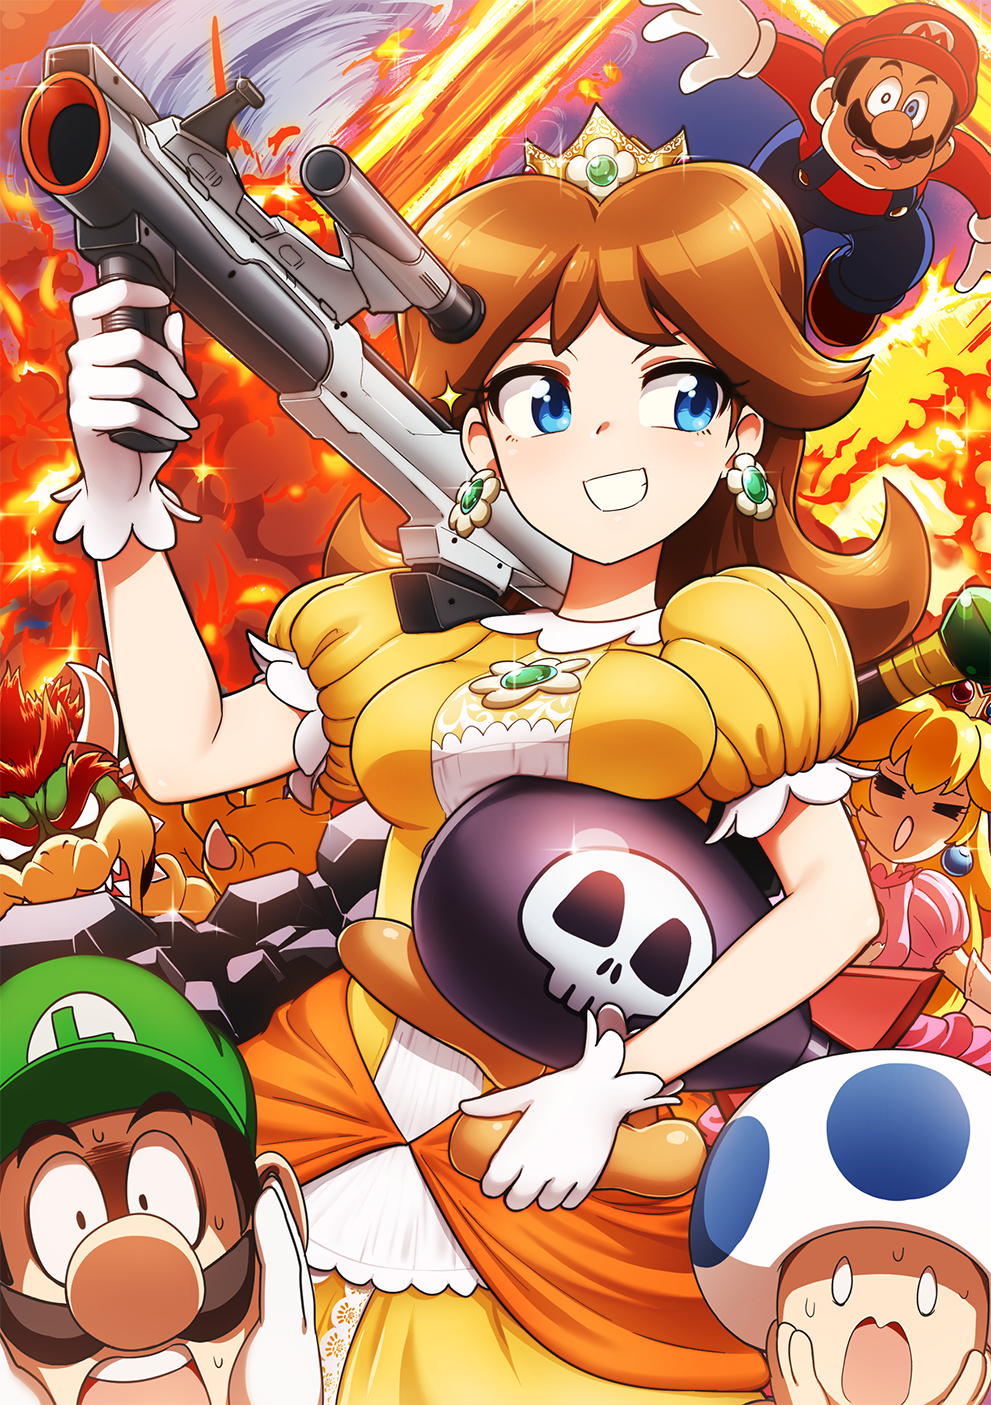 2girls 4boys animal baseball_cap blonde_hair blue_eyes bomber_(kirby) bowser breast_rest breasts brown_hair closed_eyes club commentary_request crown dragon dress earrings explosion facial_hair fire flipped_hair flower_earrings glint gloves grin hands_on_own_cheeks hands_on_own_face hat highres holding holding_weapon hoshi_no_kirby human jewelry kirby_(series) long_hair luigi luigi's_mansion mario mario_(series) mario_kart mario_party mario_tennis medium_breasts monster multiple_boys multiple_girls mustache nintendo nintendo_ead o_o open_mouth overalls pink_dress plumber princess princess_daisy princess_peach puffy_short_sleeves puffy_sleeves rocket_launcher scared short_sleeves skull_print smile sparkle super_mario_bros. super_mario_bros._(anime) super_mario_land super_smash_bros. super_smash_bros._ultimate super_smash_bros_64 super_smash_bros_brawl super_smash_bros_melee sweat takahashi_umori toad turtle weapon white_gloves yellow_dress